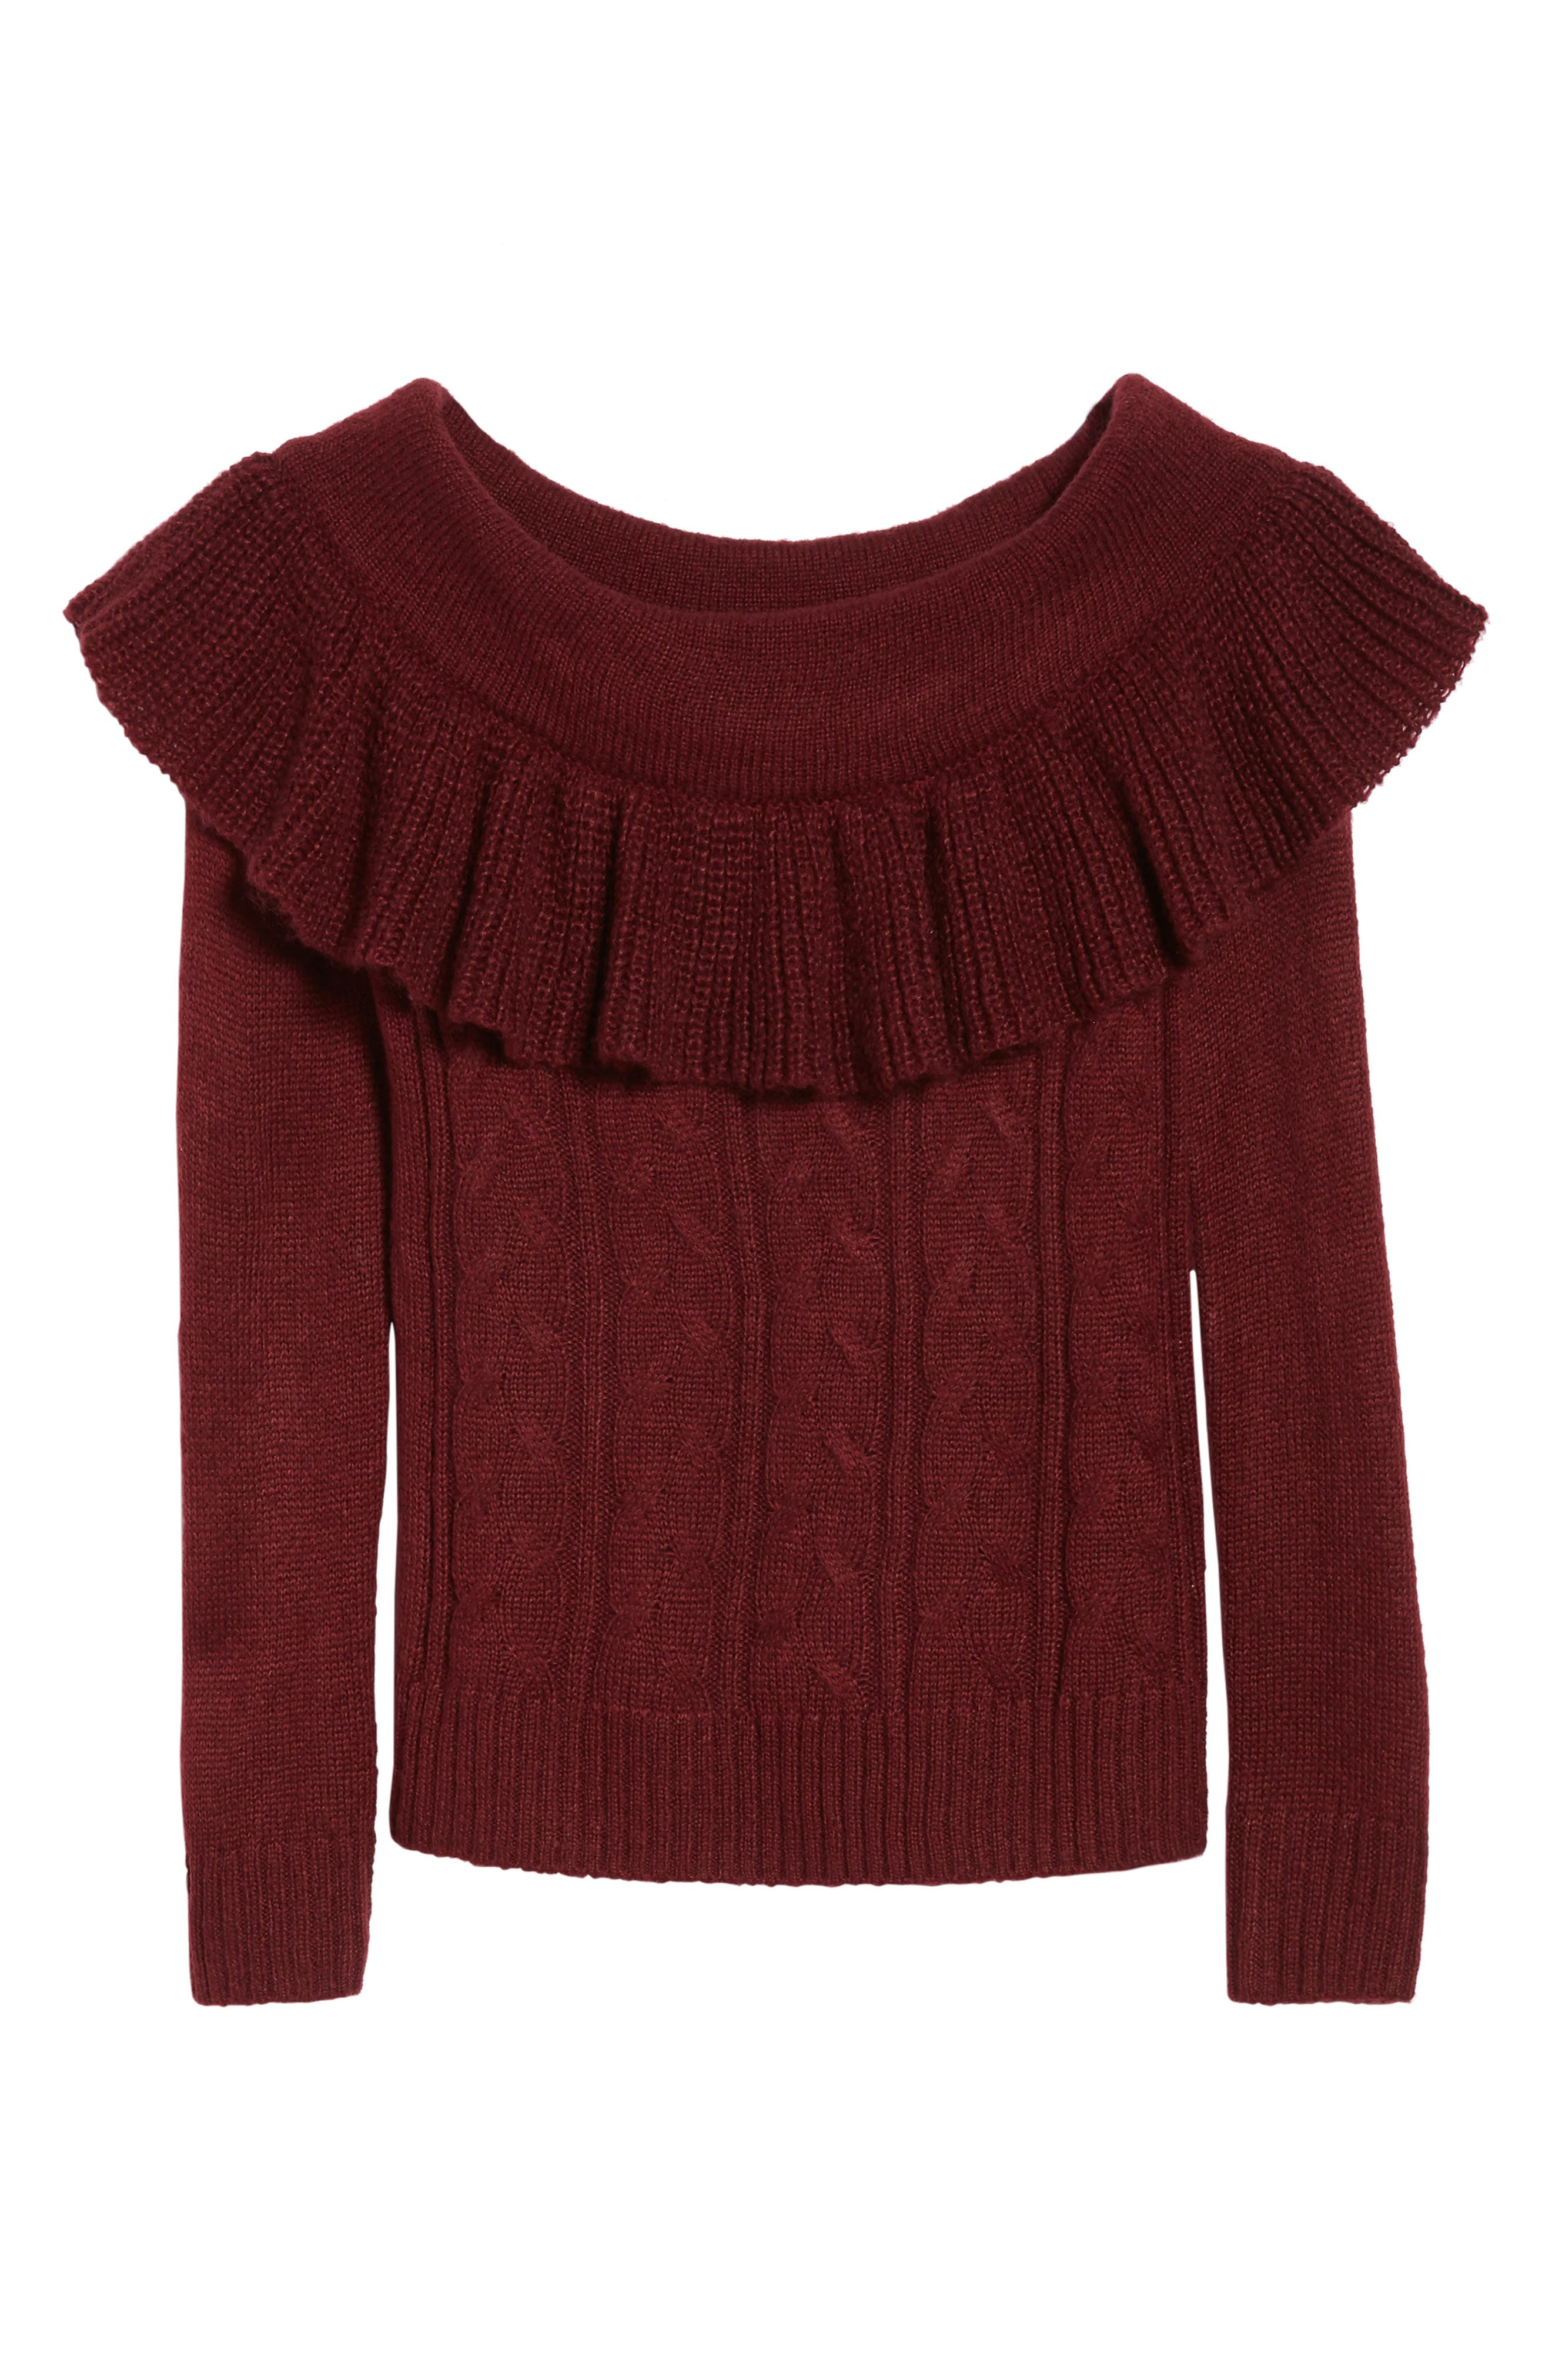 Sheldon Off the Shoulder Sweater,                             Alternate thumbnail 6, color,                             600